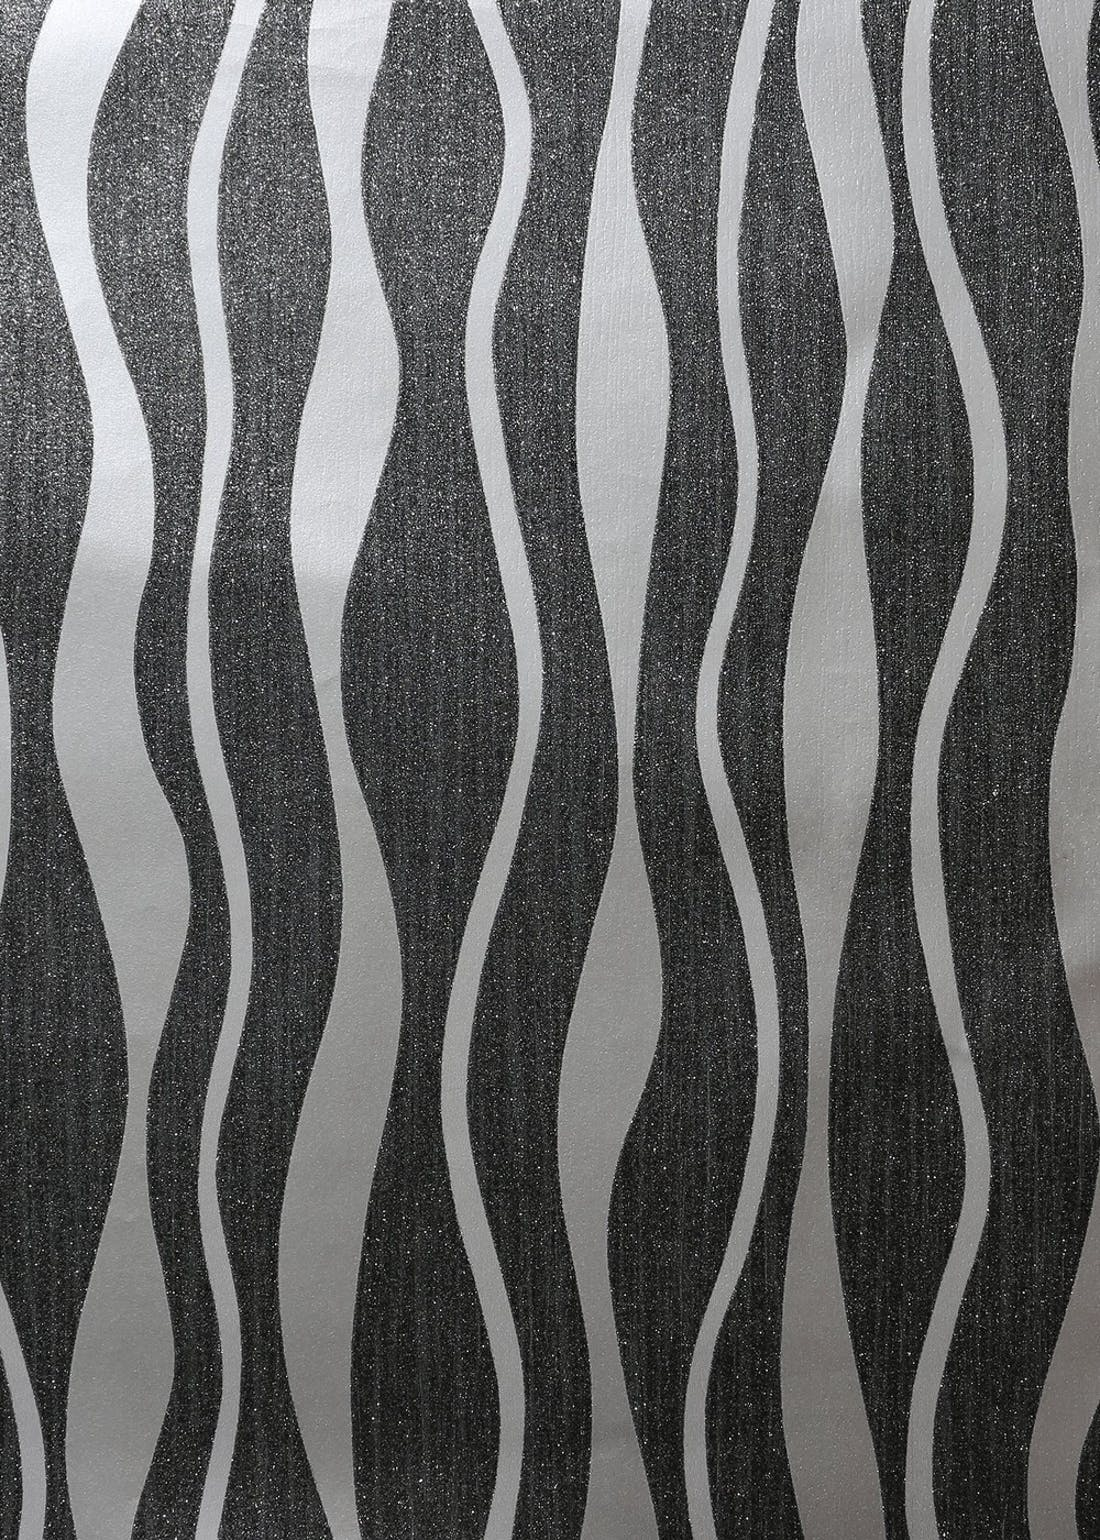 Arthouse Black & Silver Metallic Wave Wallpaper (10.05m x 53cm)